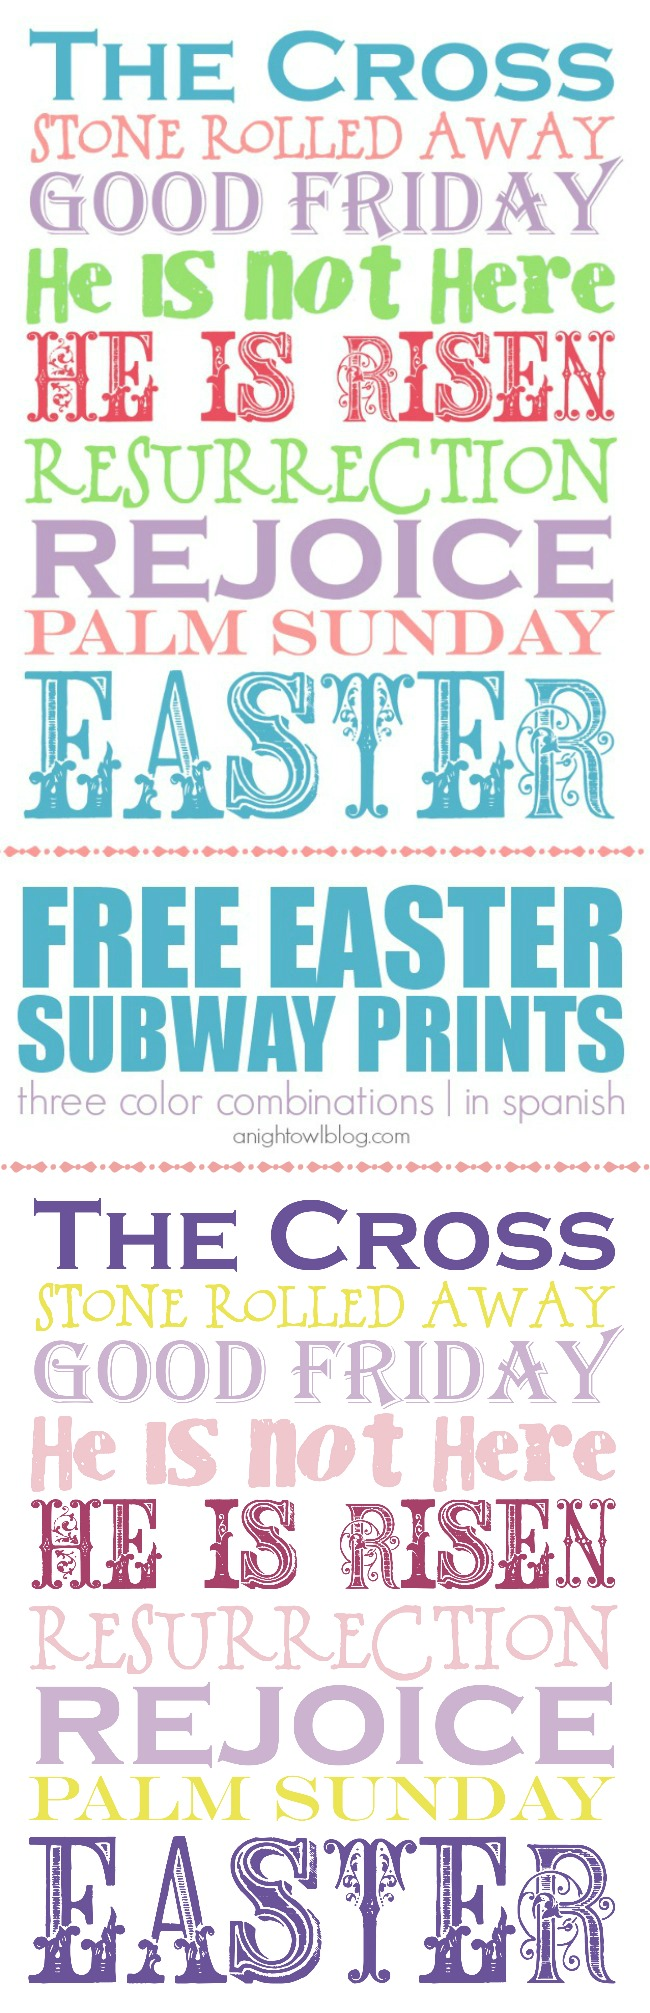 Easter Subway Printable Collection | A Night Owl Blog